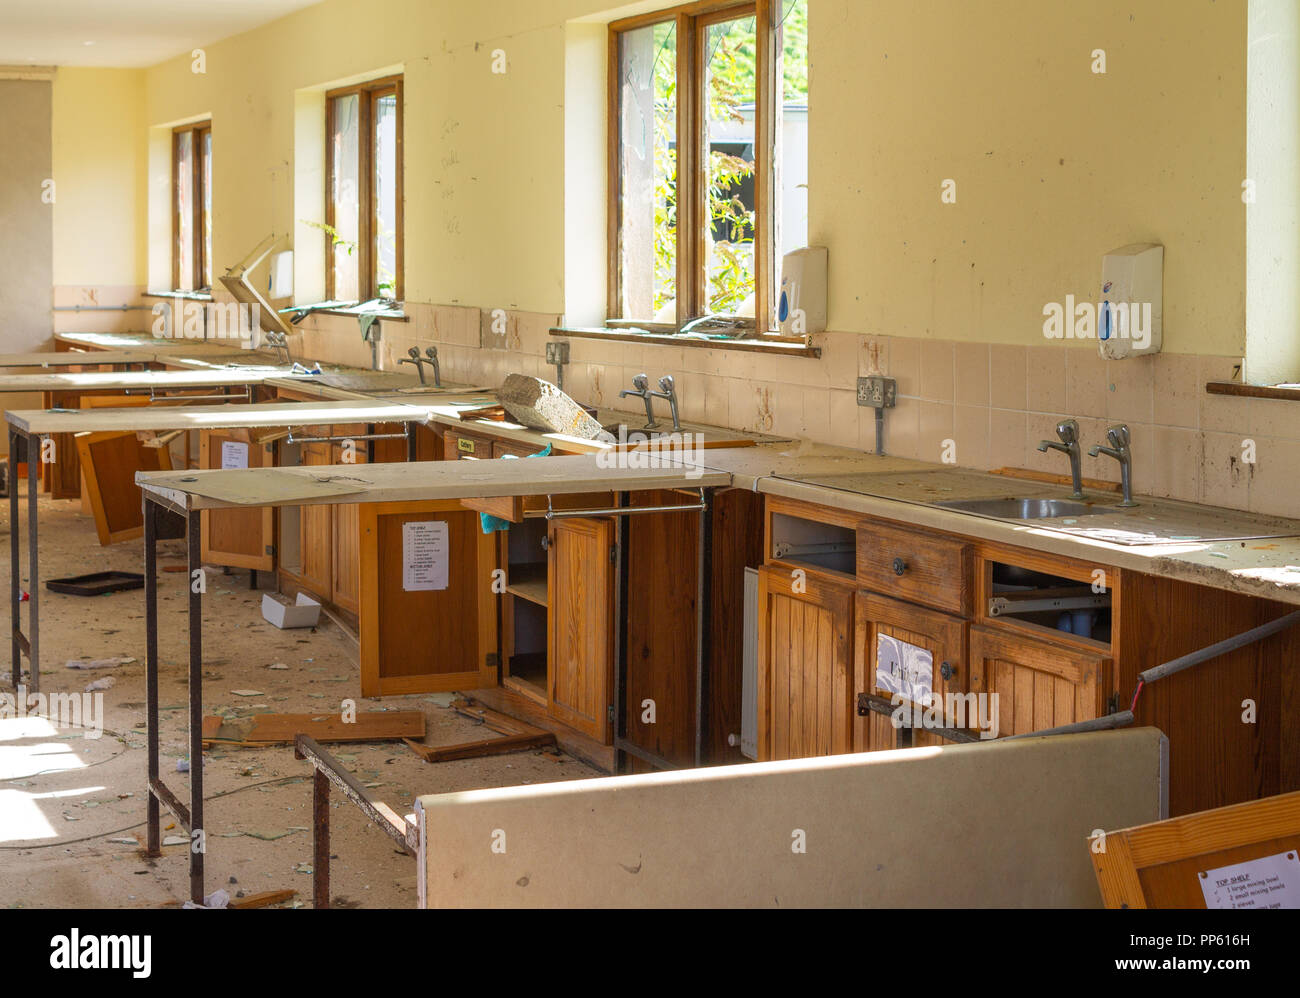 old-derelict-school-building-thats-been-abandoned-and-vandalised-suffered-vandalism-PP616H.jpg